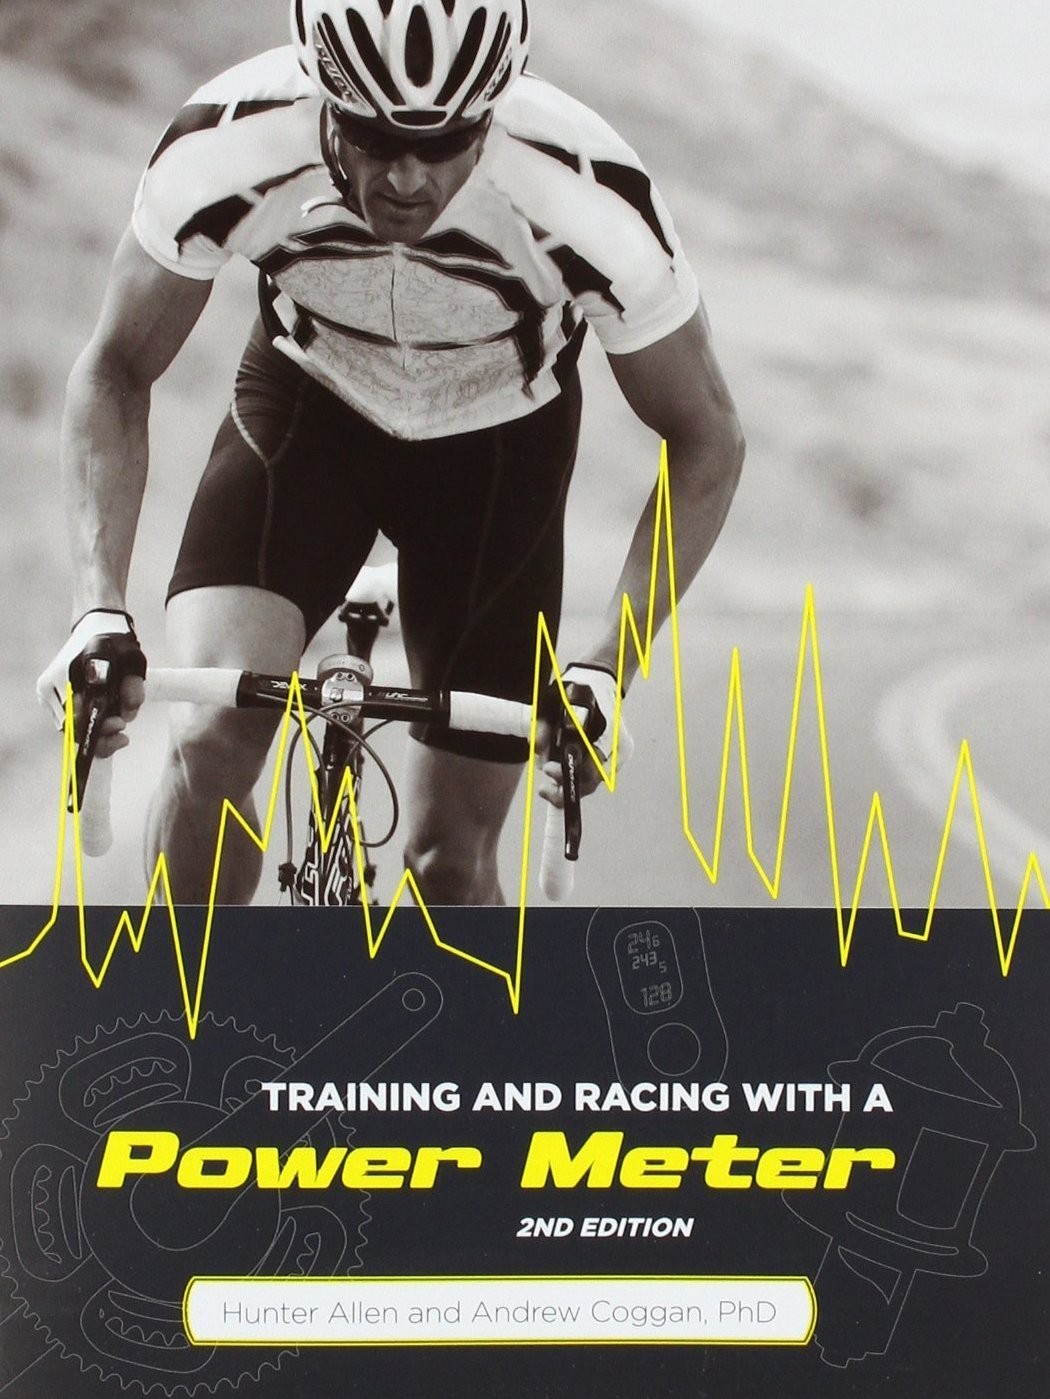 Training and Racing with a Powermeter 2nd Edition